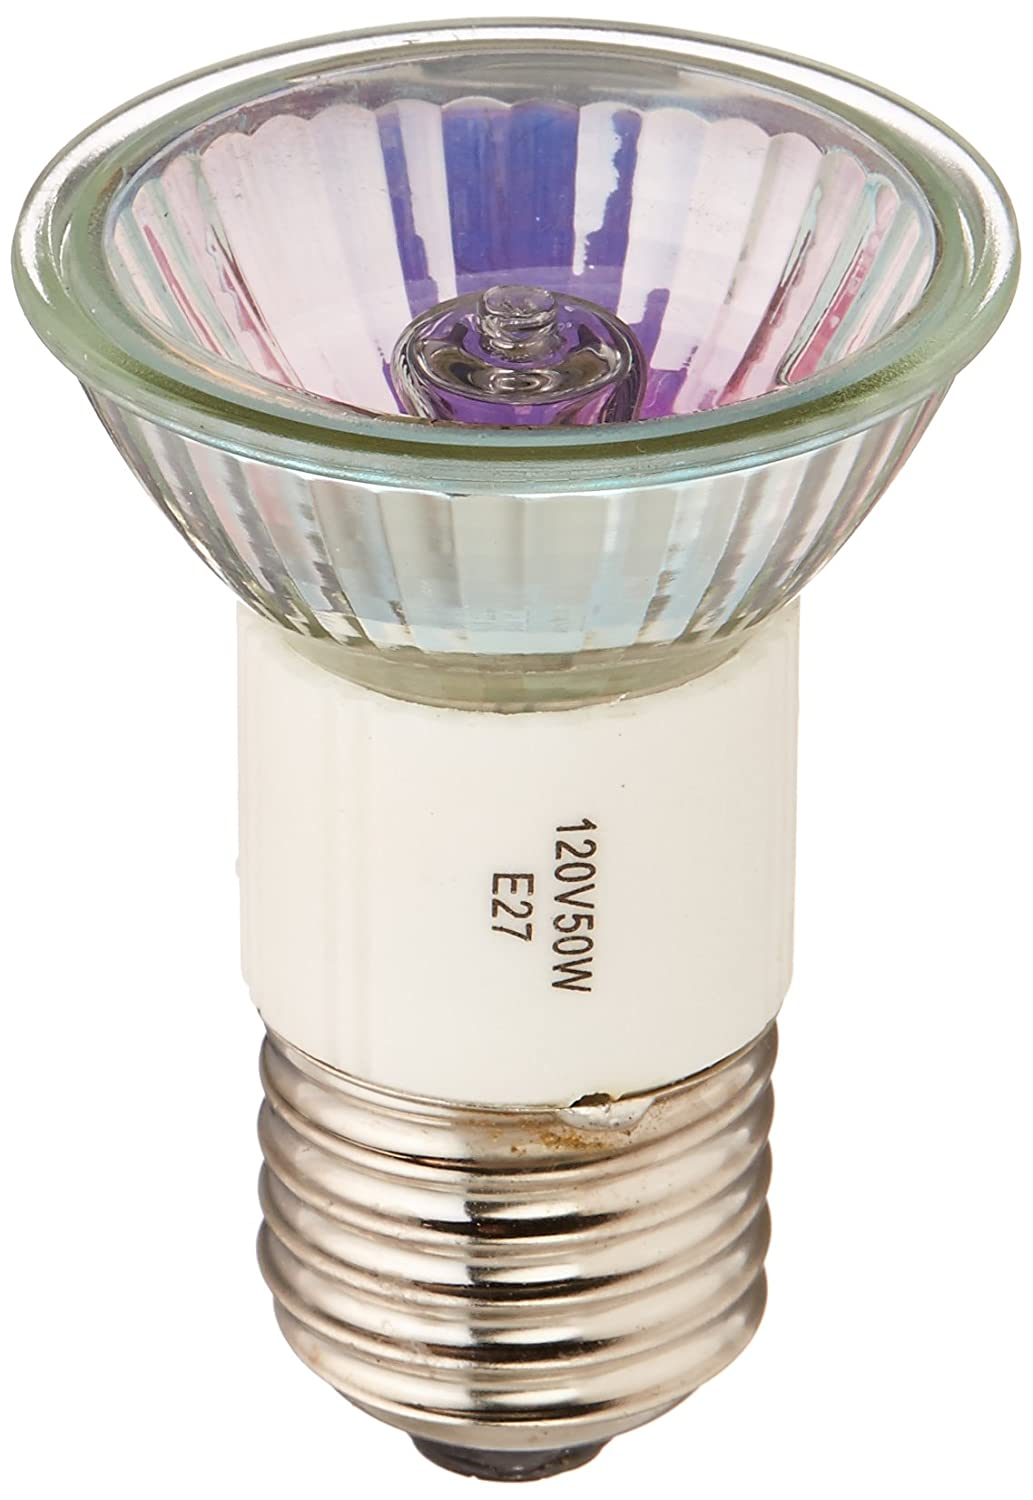 General Electric WB08X10028 Range/Stove/Oven Halogen Lamp